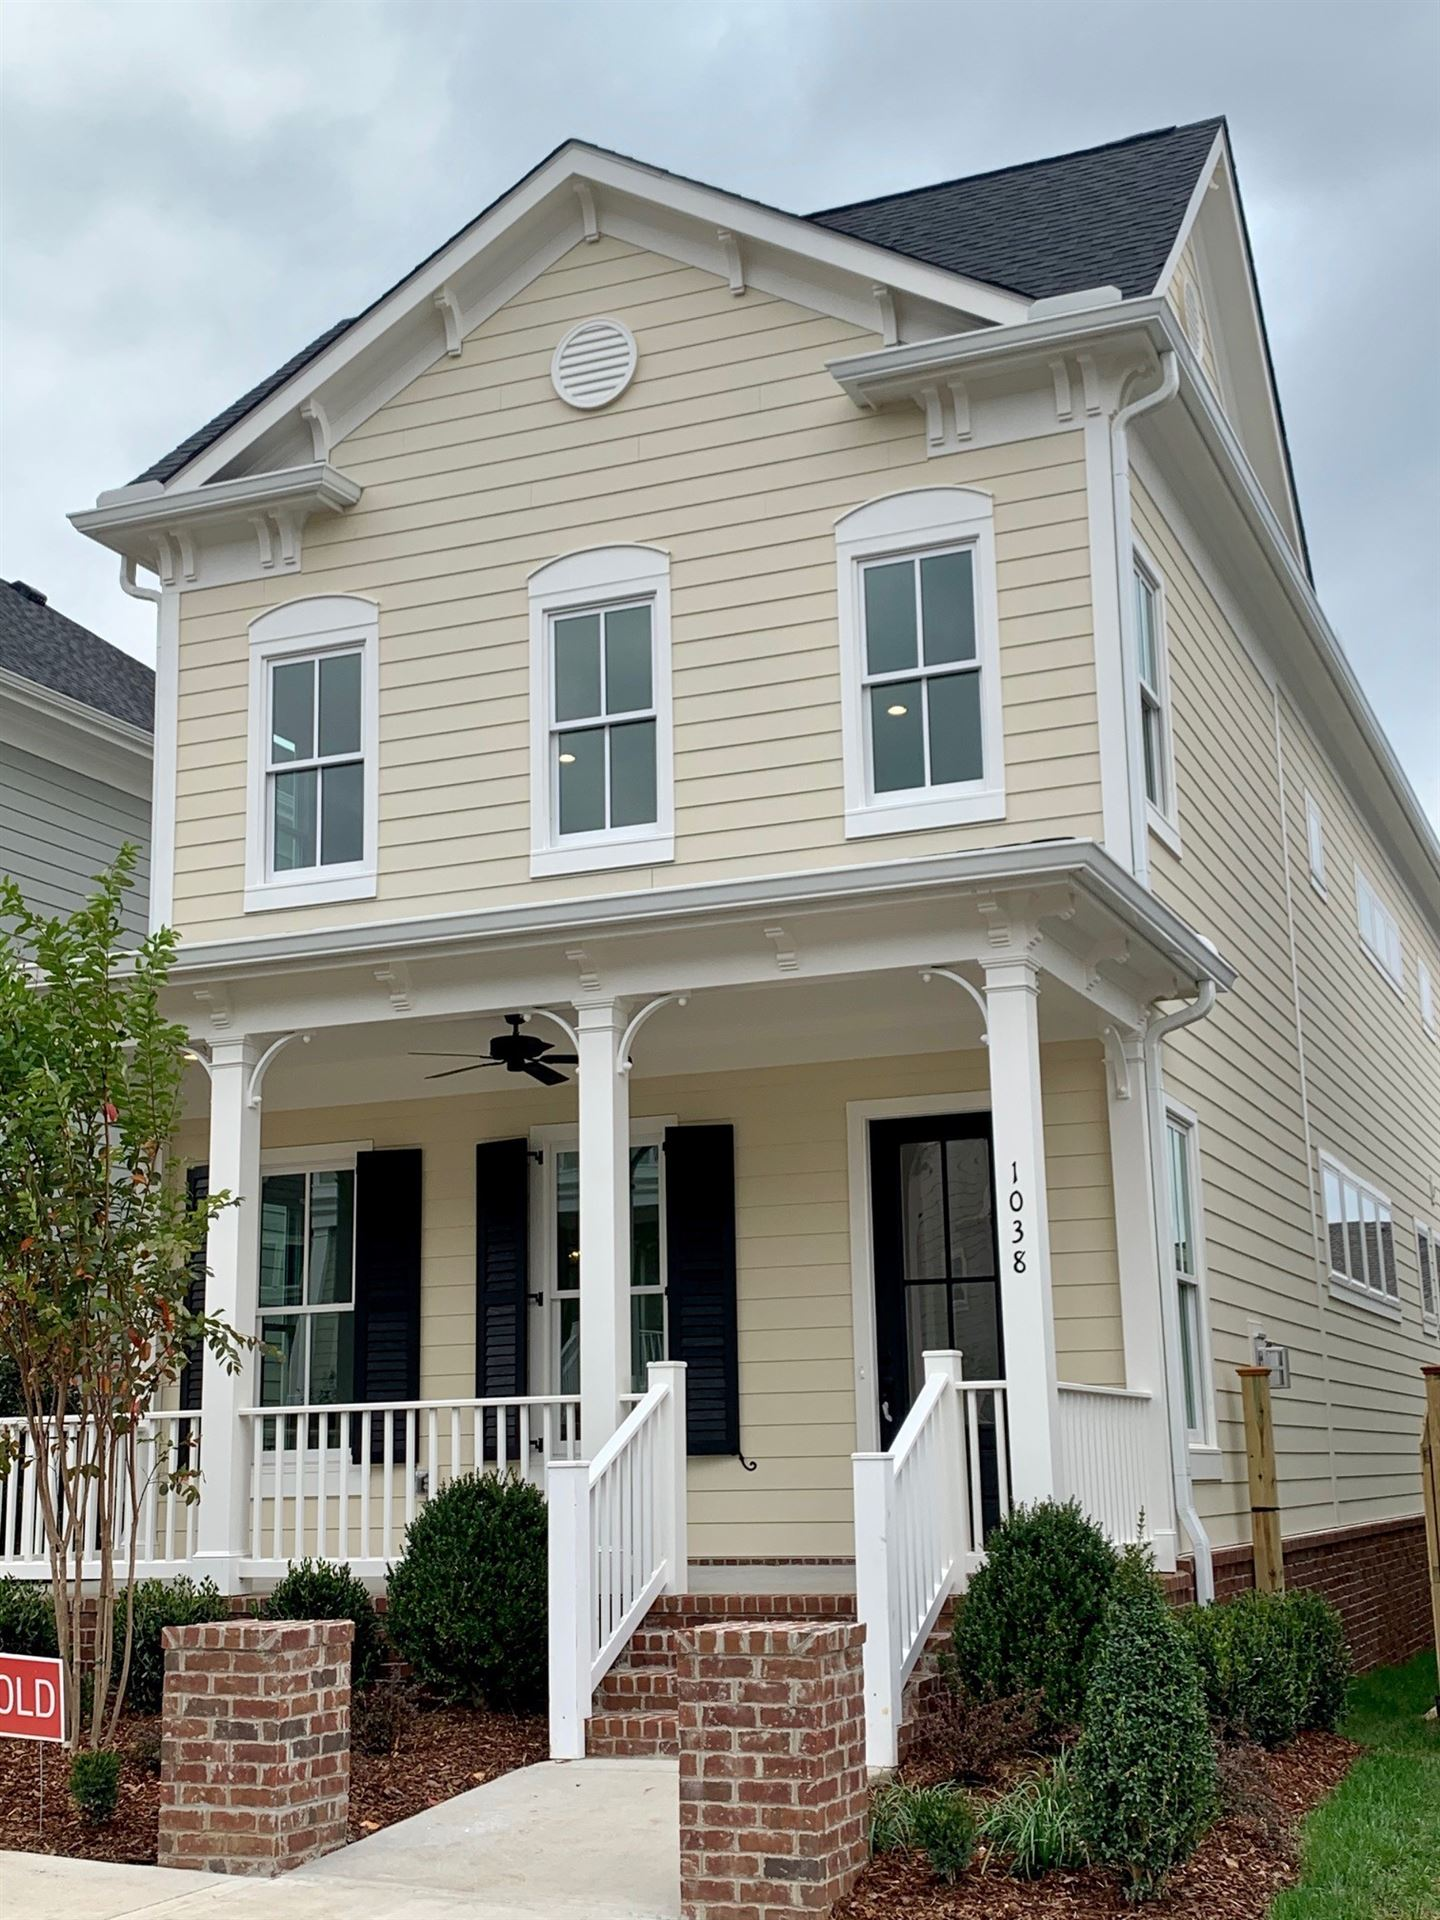 Photo of 1038 Calico Street, WH # 2097, Franklin, TN 37064 (MLS # 2142410)